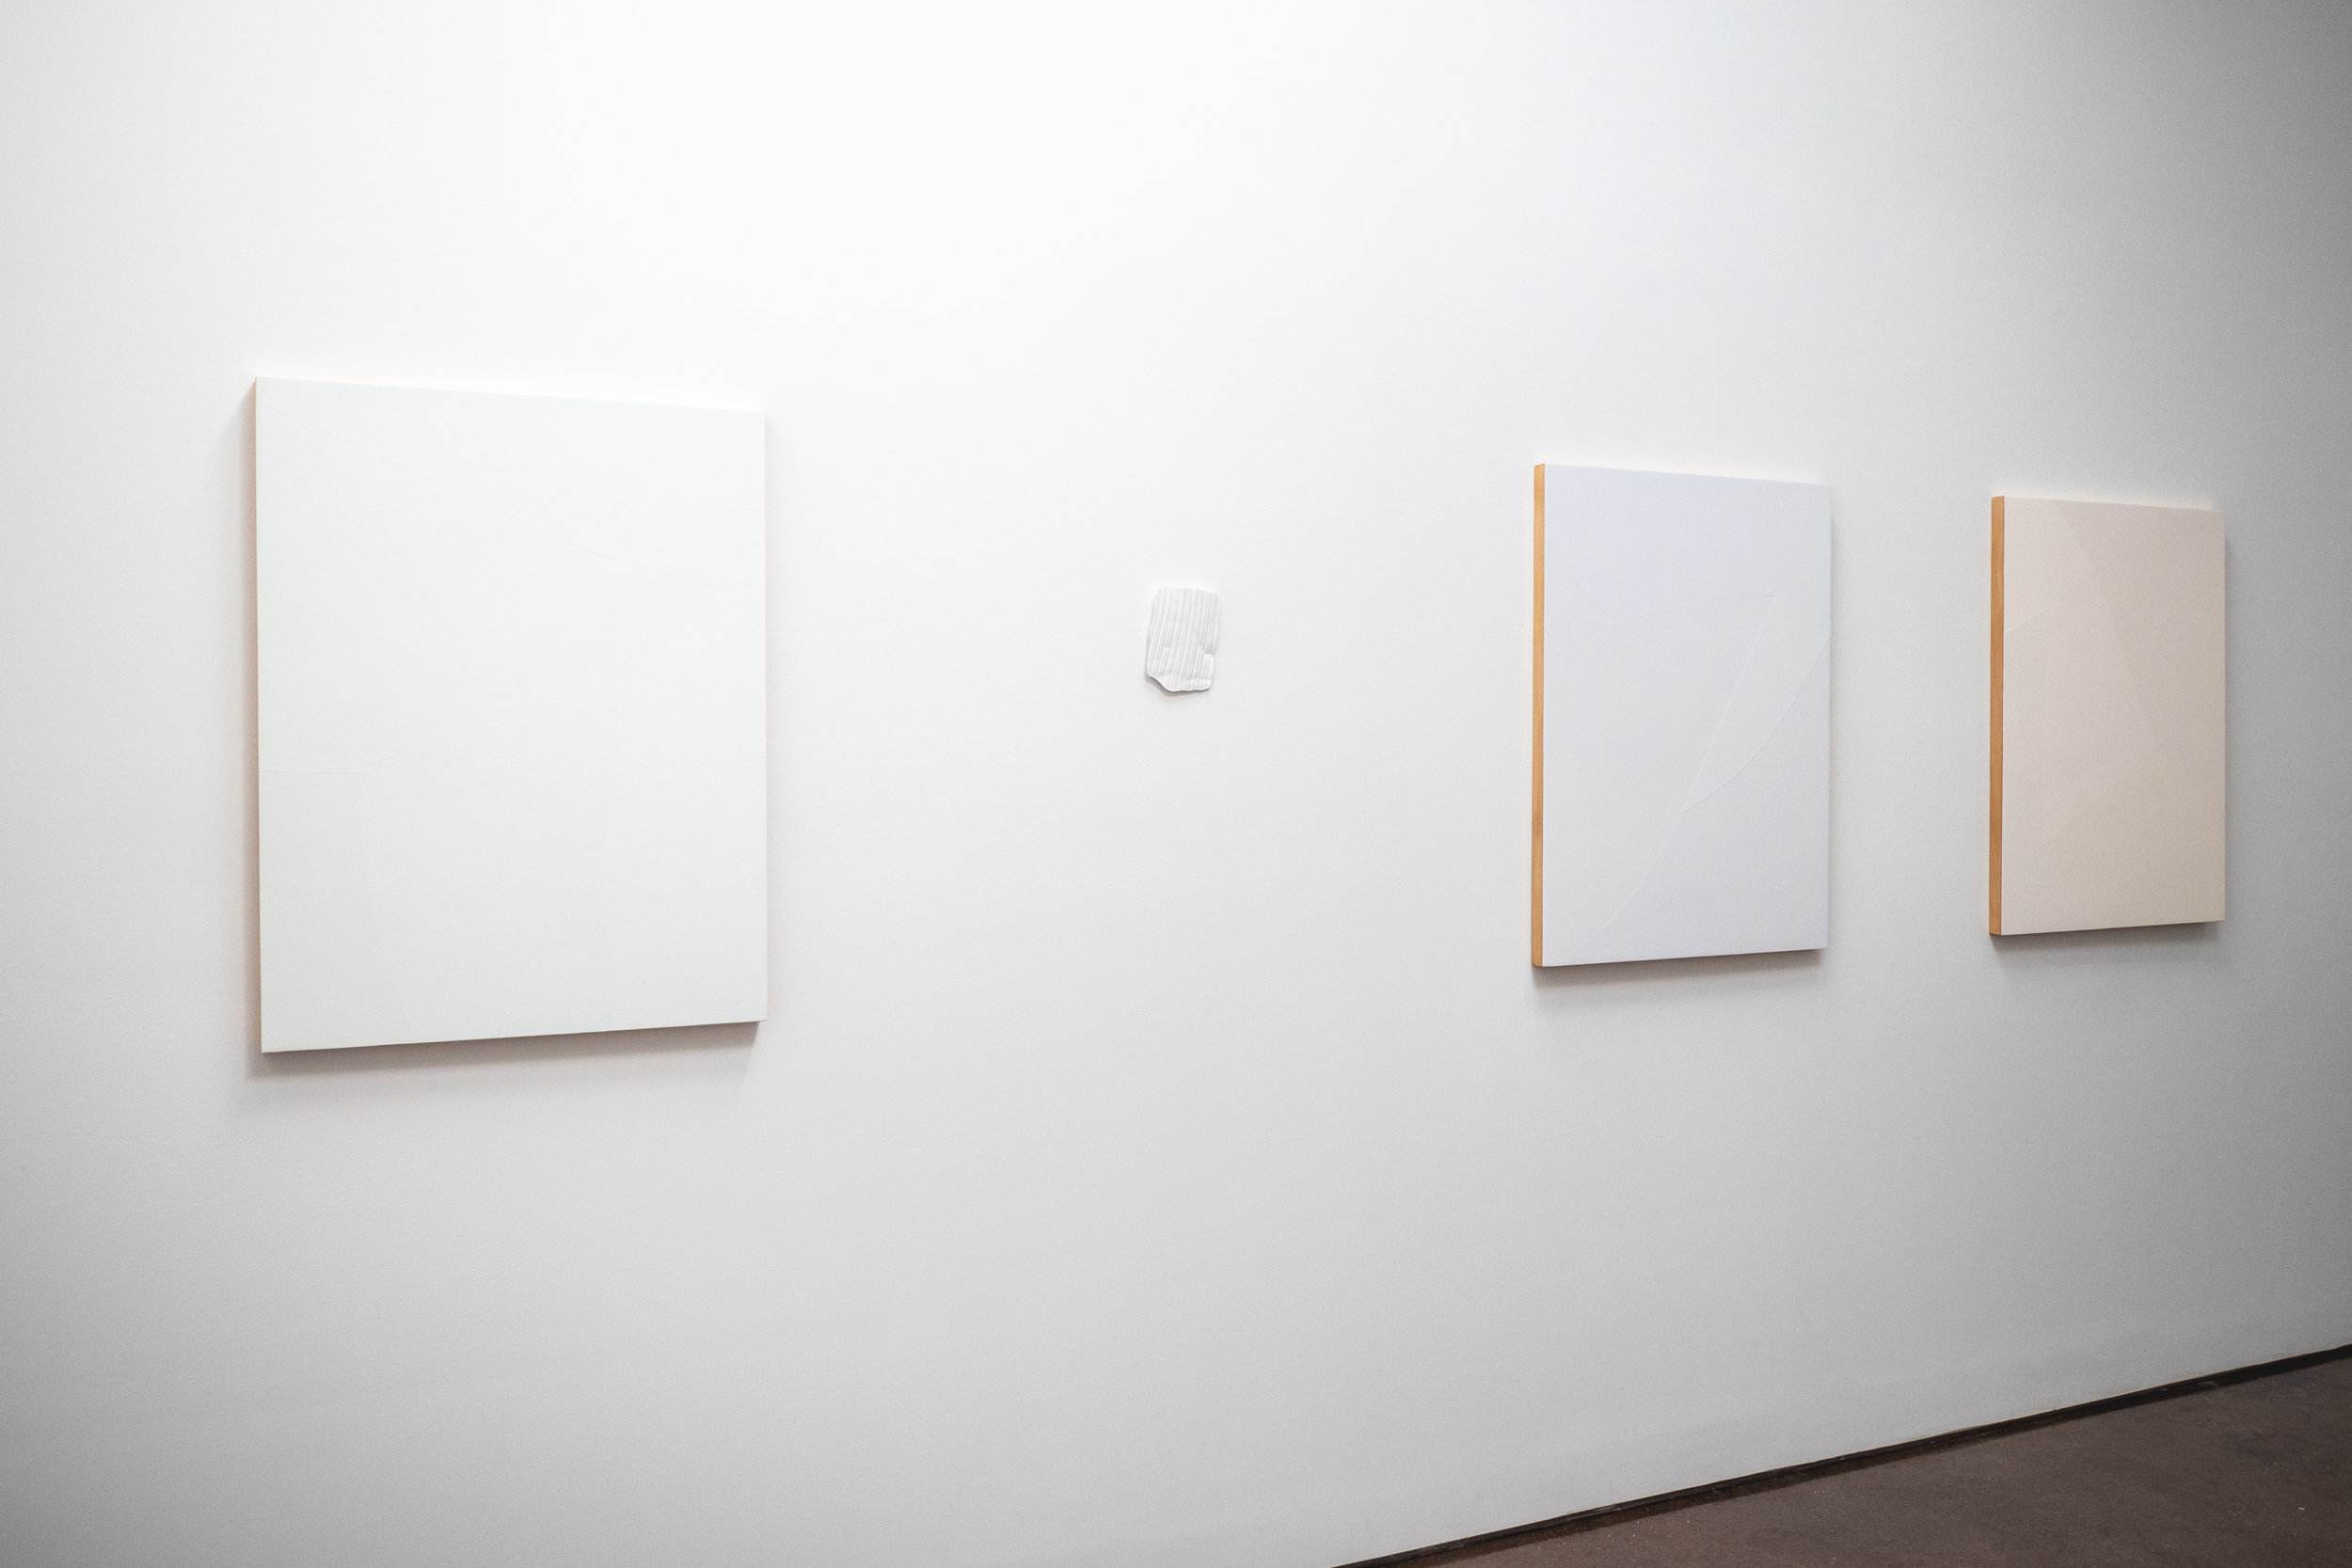 acclimatizing cadence , exhibition view, Christie Contemporary, photo by Polina Teif